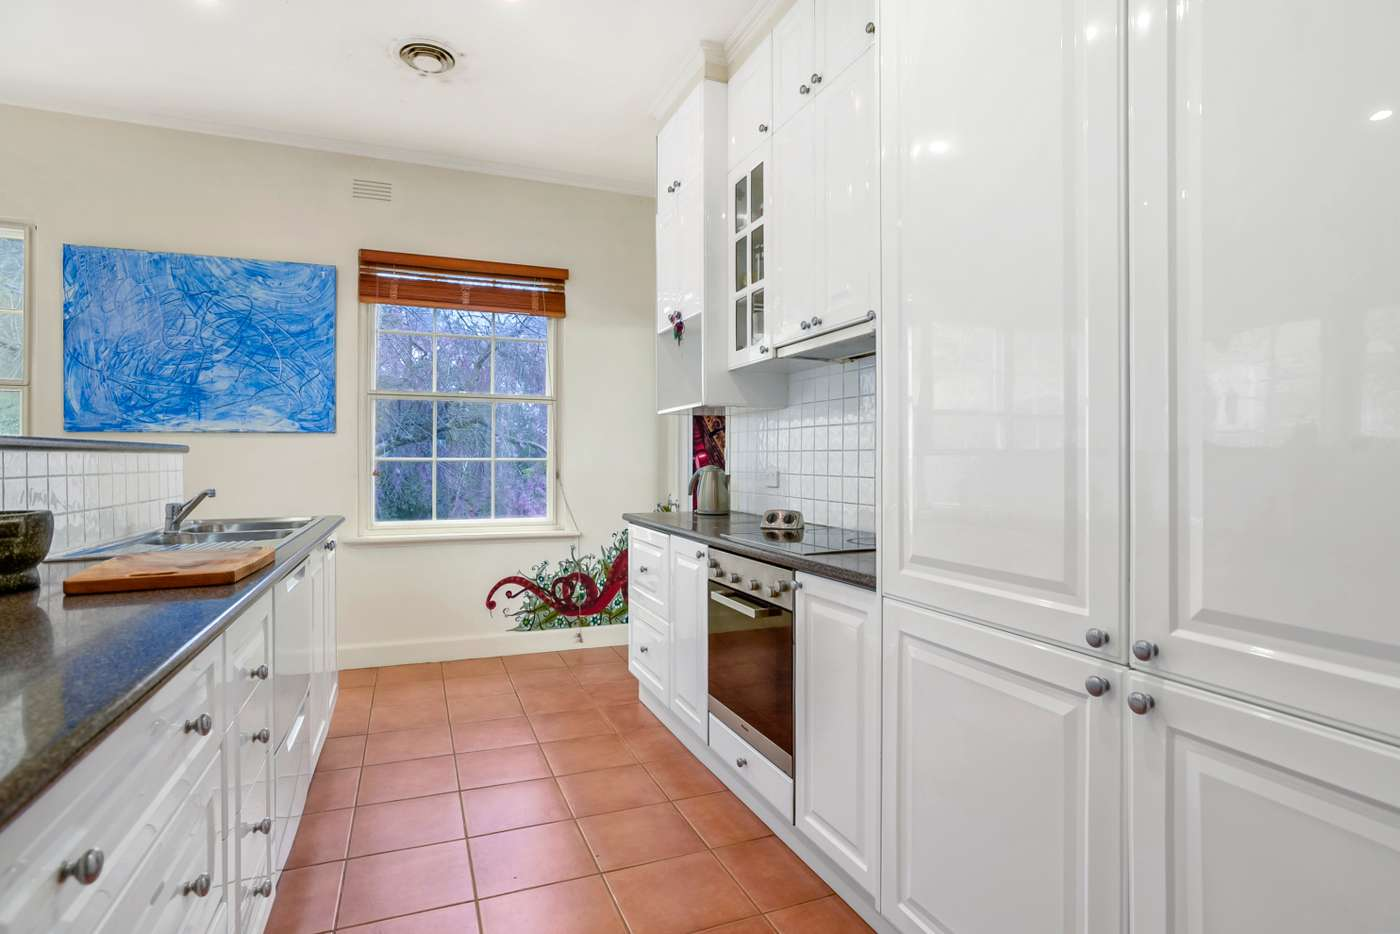 Sixth view of Homely house listing, 74 Douglas Road, Mount Macedon VIC 3441